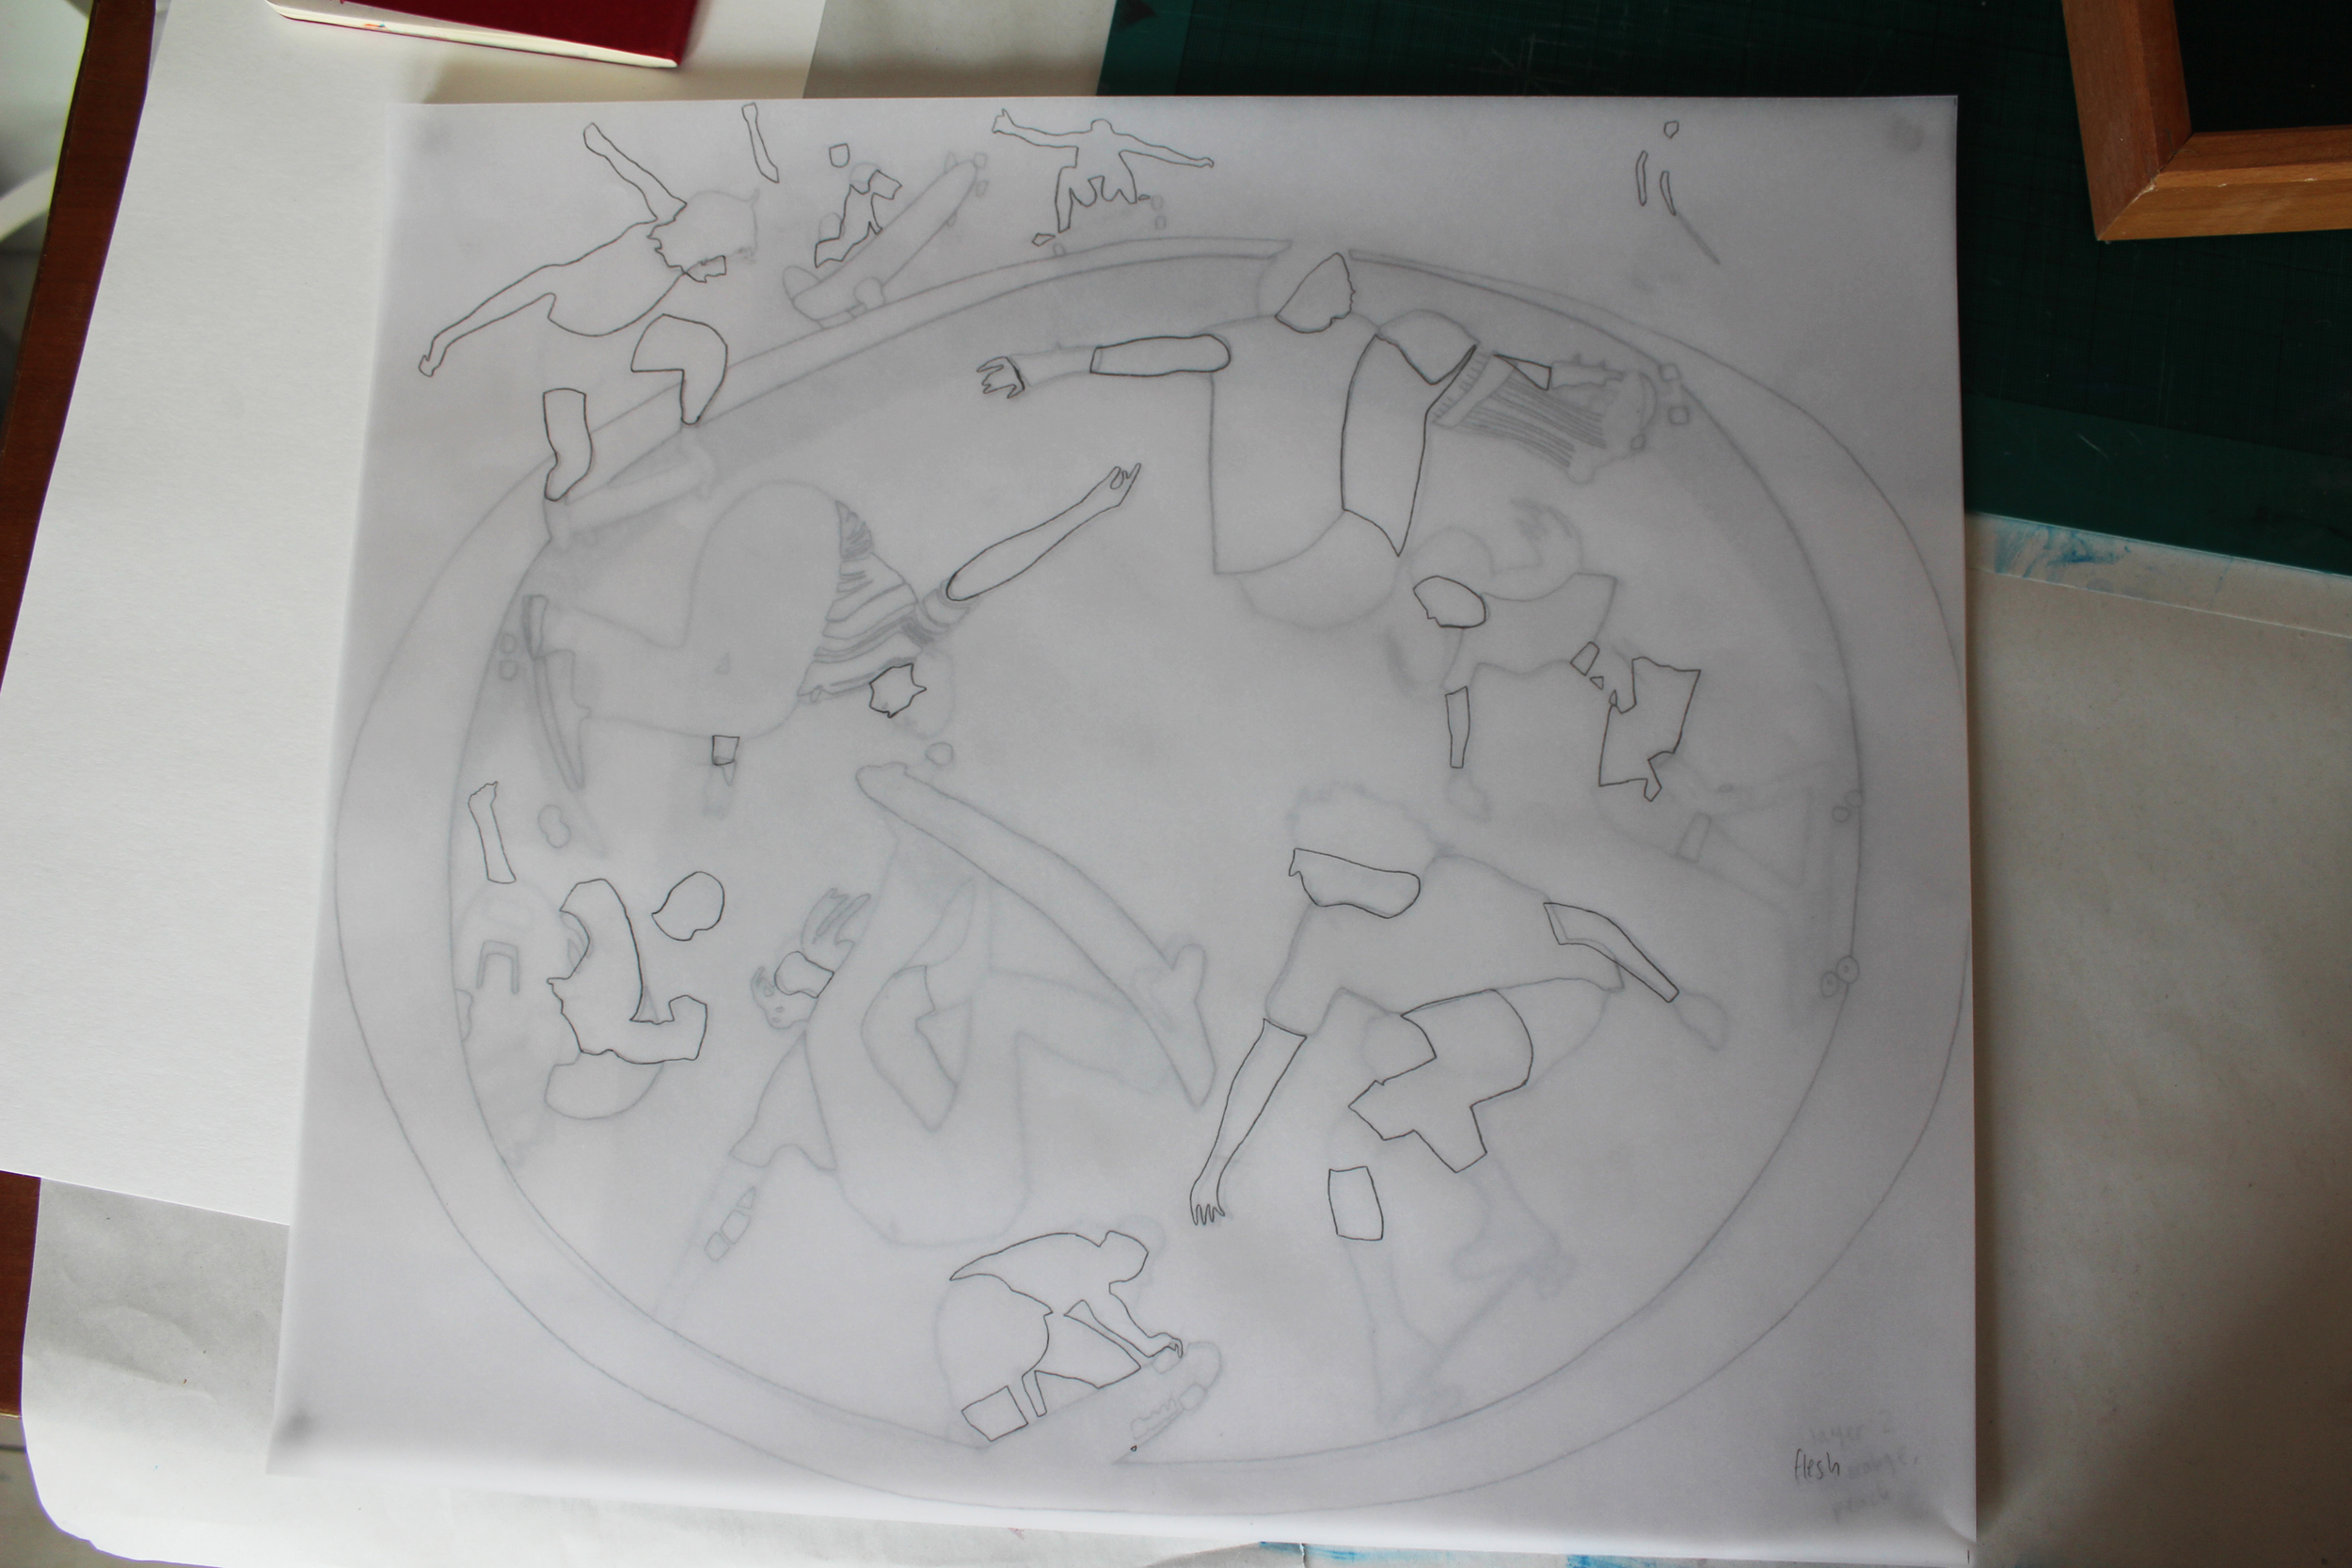 Here are all six layers traced, one of top of the other - so you can see the image emerging